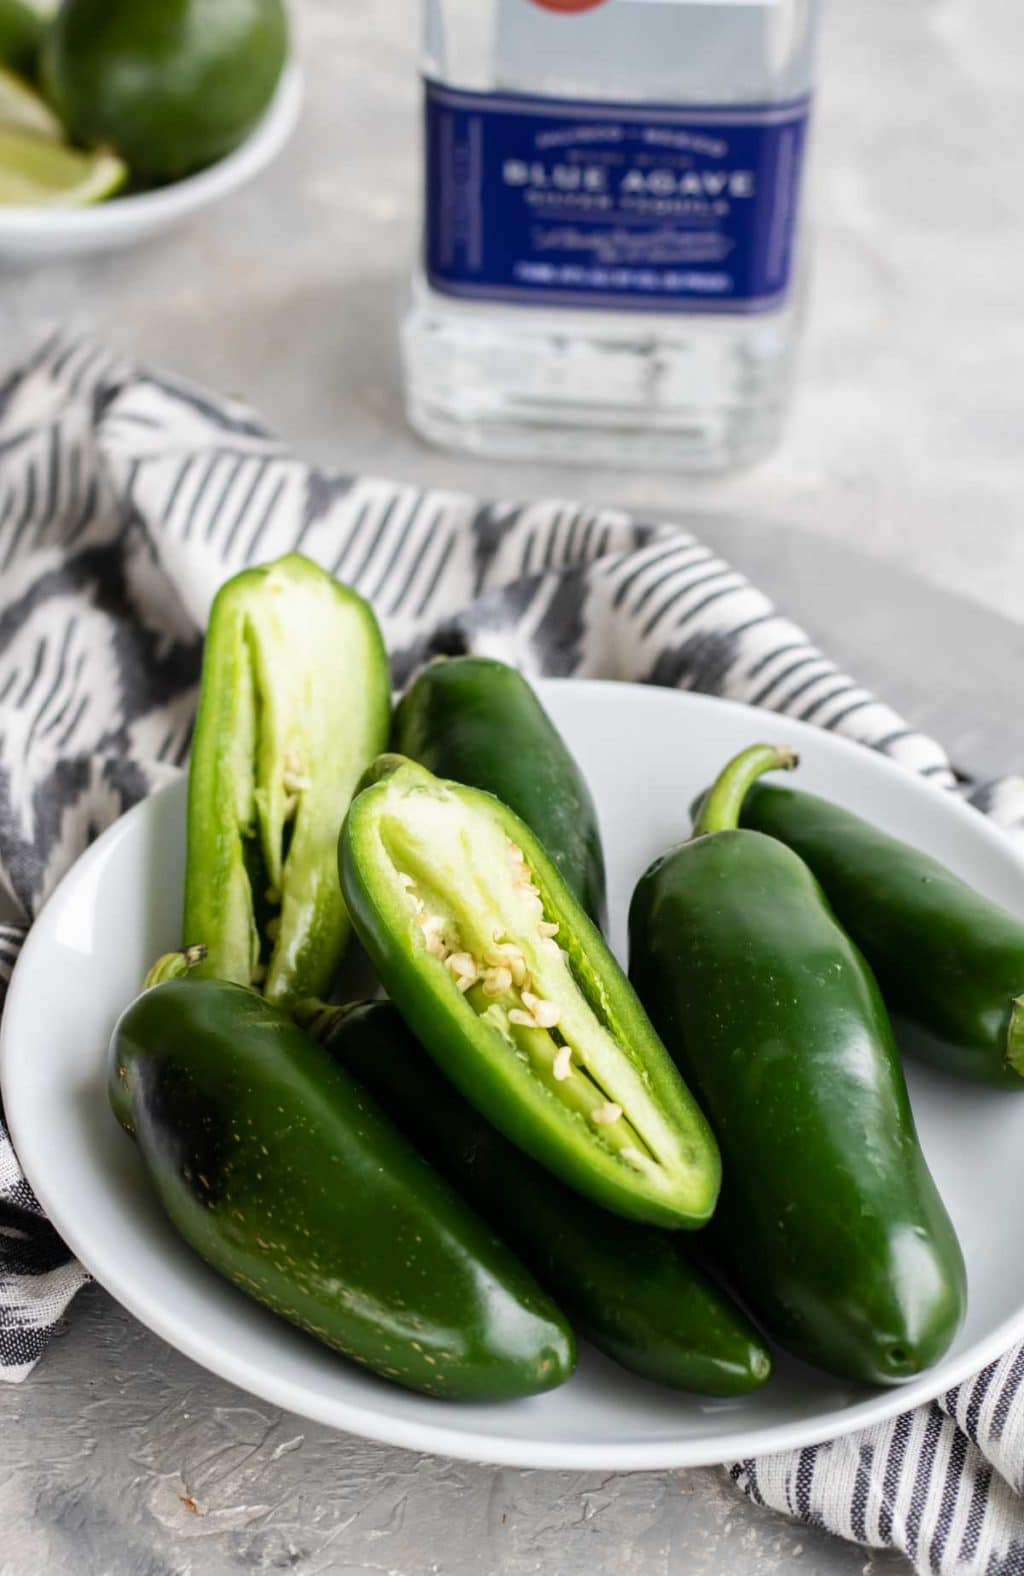 jalapenos in a white bowl with a bottle of tequila in the background